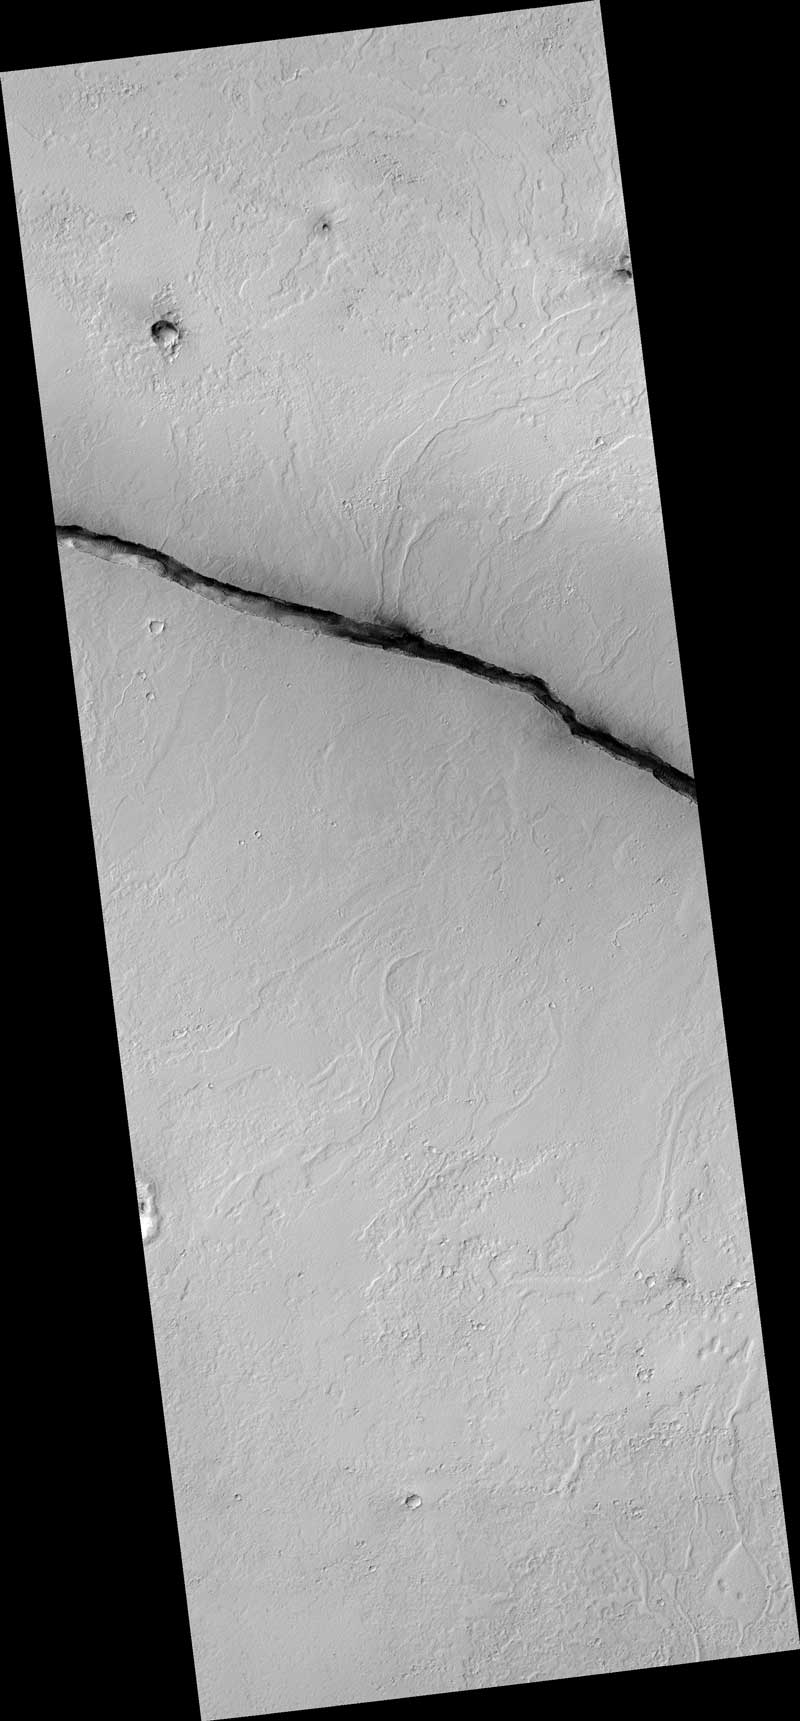 The linearity of the volcanic vent shown in this HiRISE image, in conjunction with evidence of lava flow from the vent, suggests control by combined volcano-tectonic processes. The details of this vent gained by HiRISE should provide insight into those volcano-tectonic processes along Cerberus Fossae fissures in two ways.